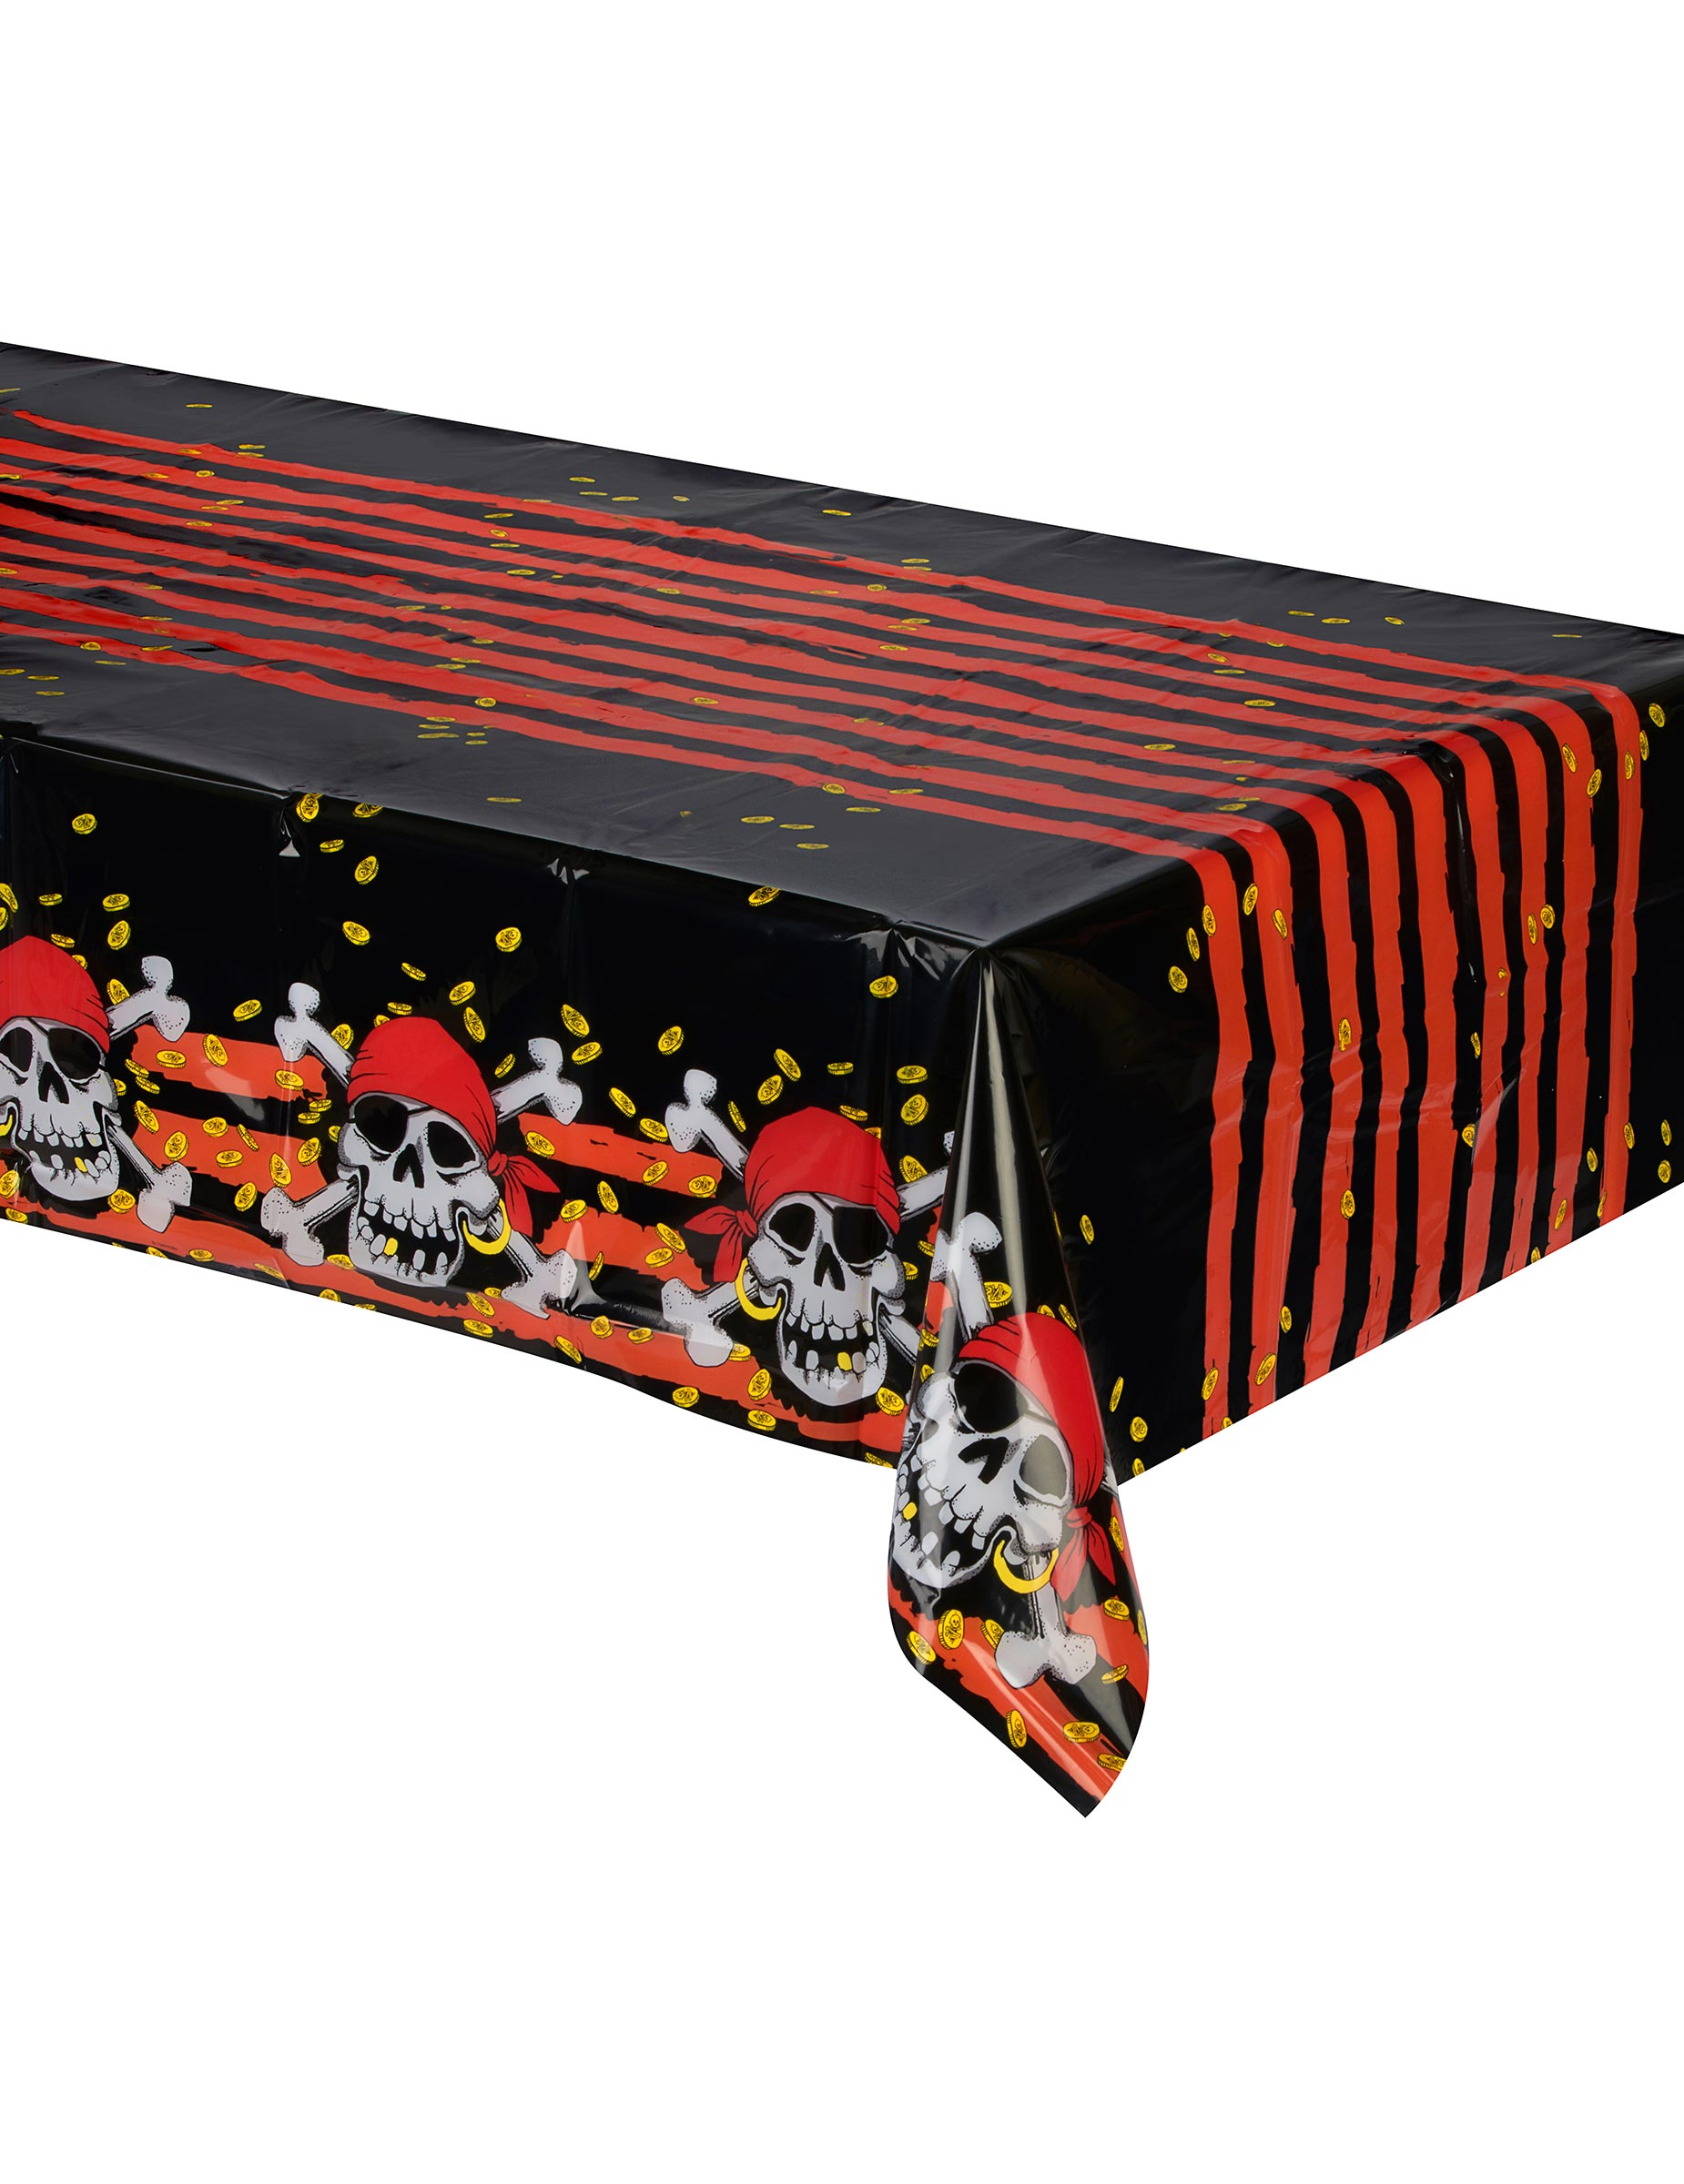 tischdecke totenkopf skull piratenparty deko rot schwarz weiss 120x180cm g nstige faschings. Black Bedroom Furniture Sets. Home Design Ideas